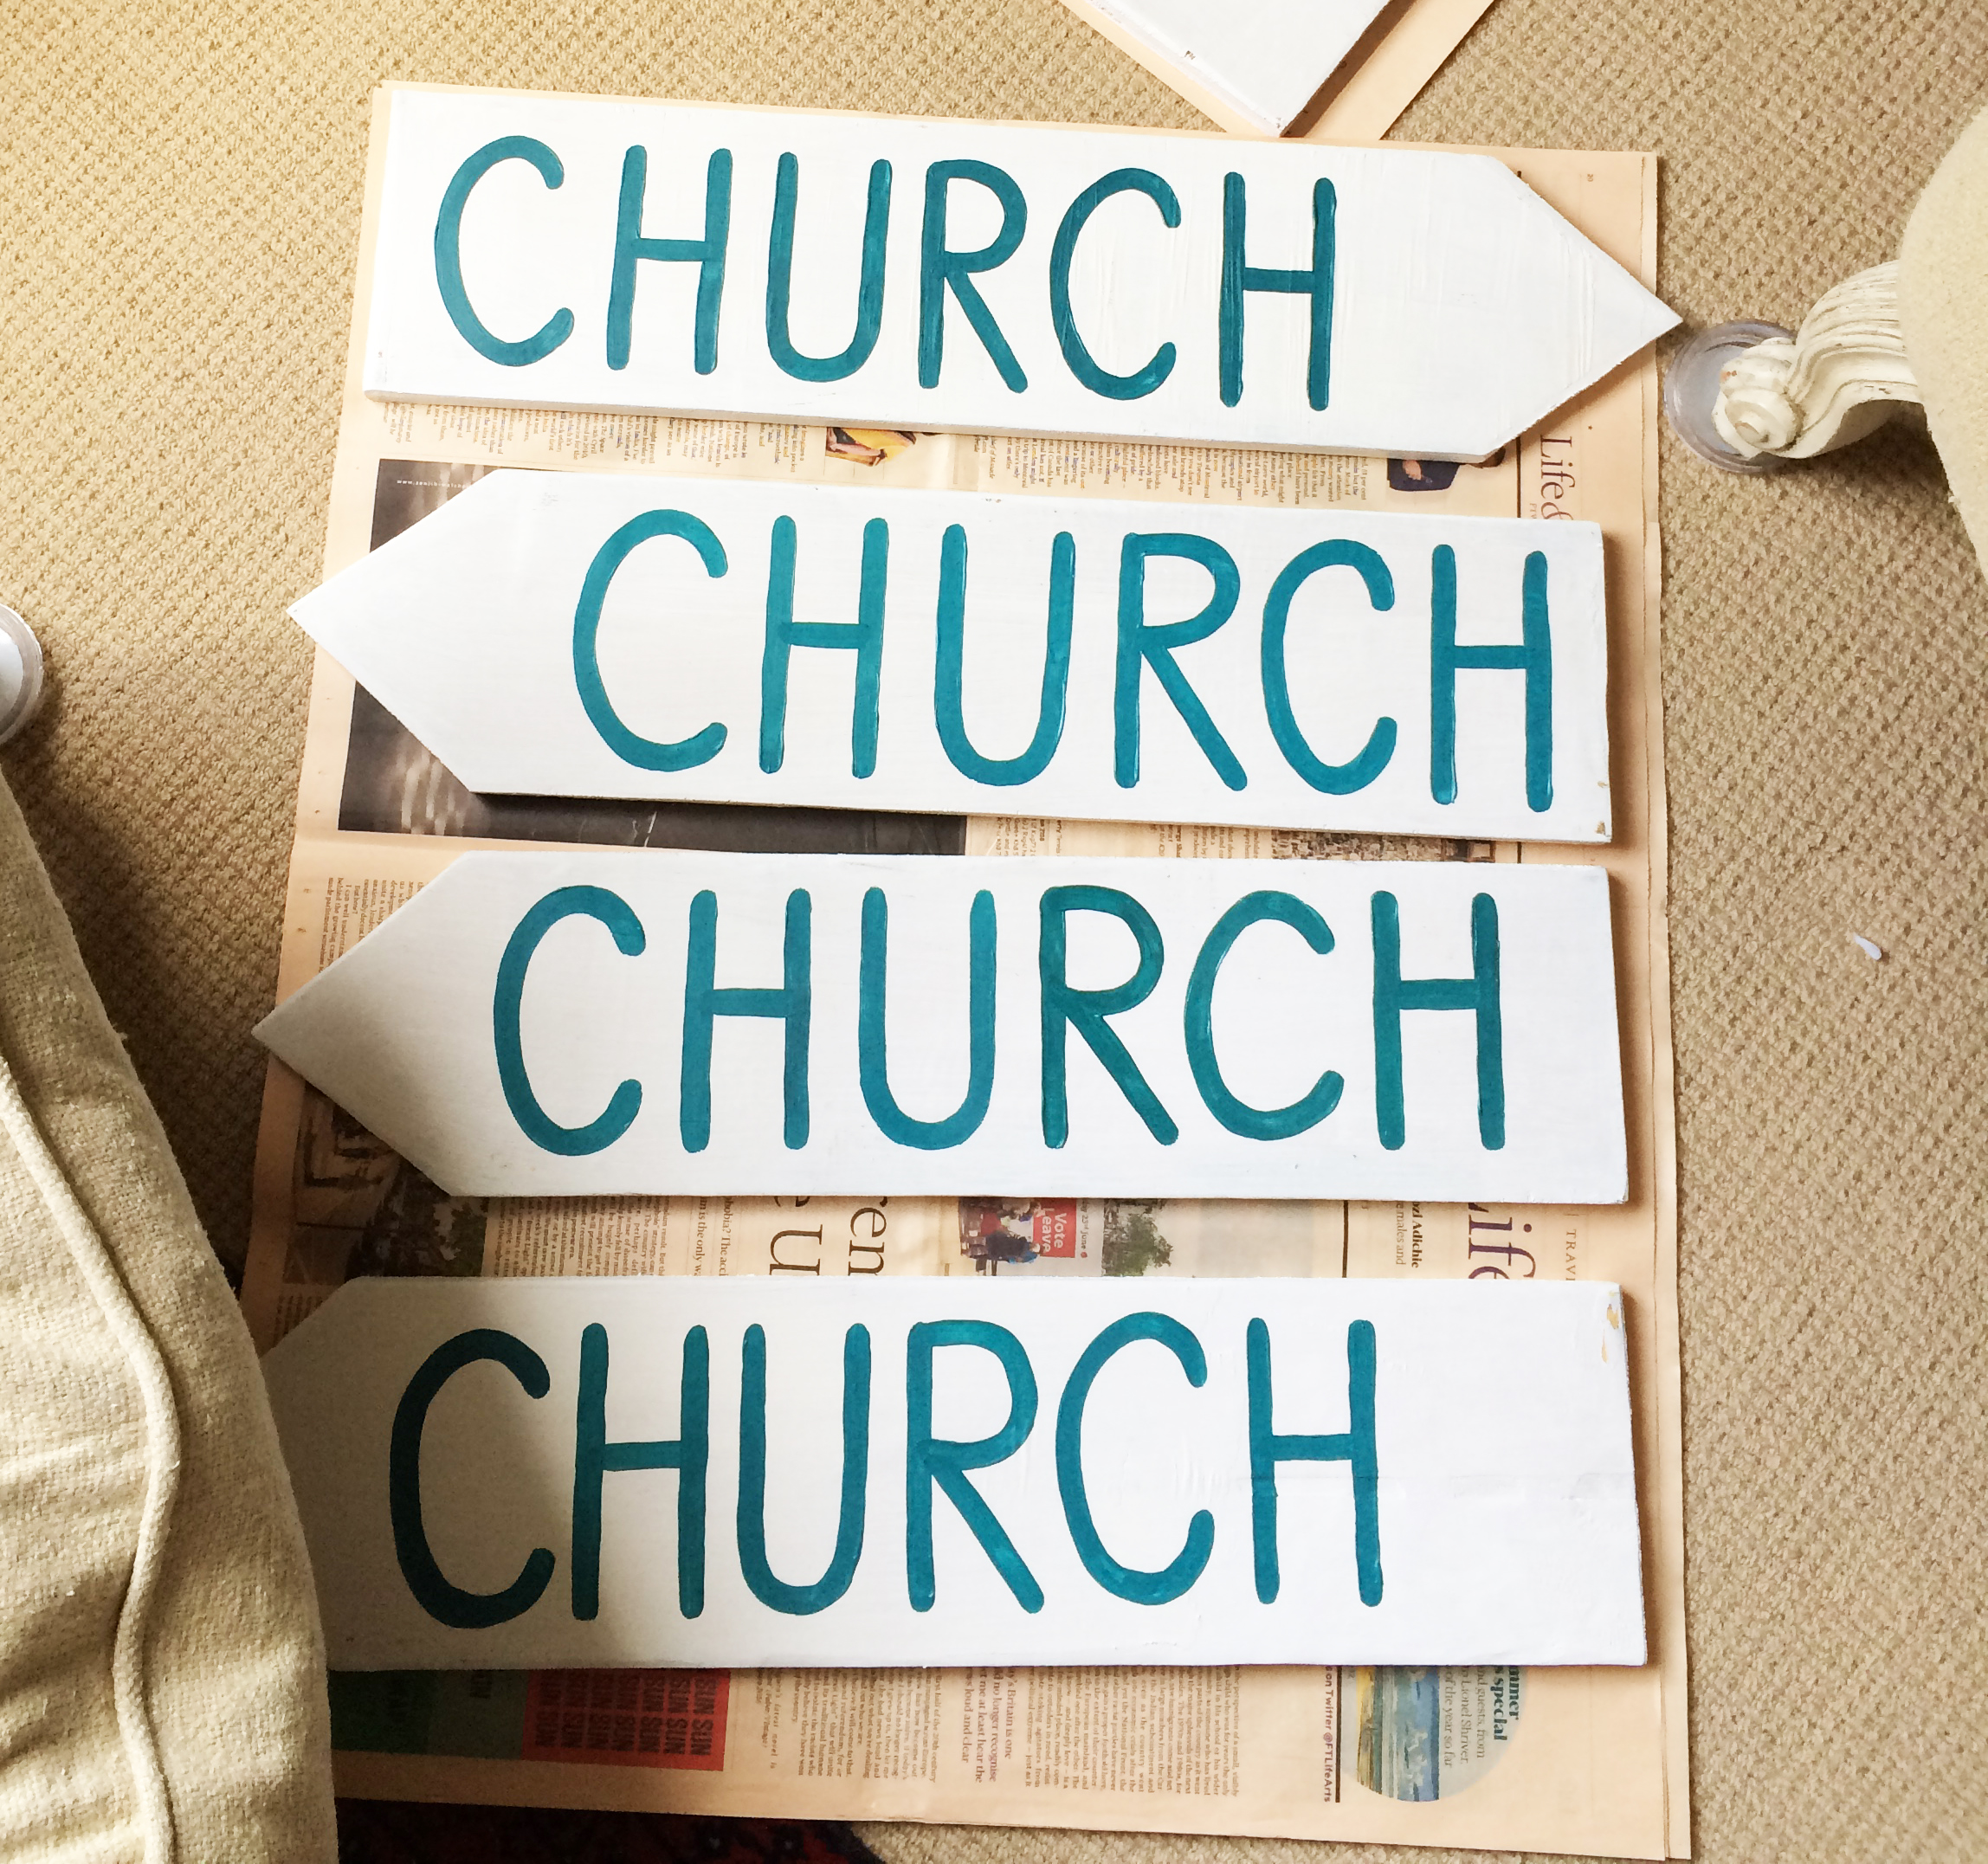 Hand-painted signposting